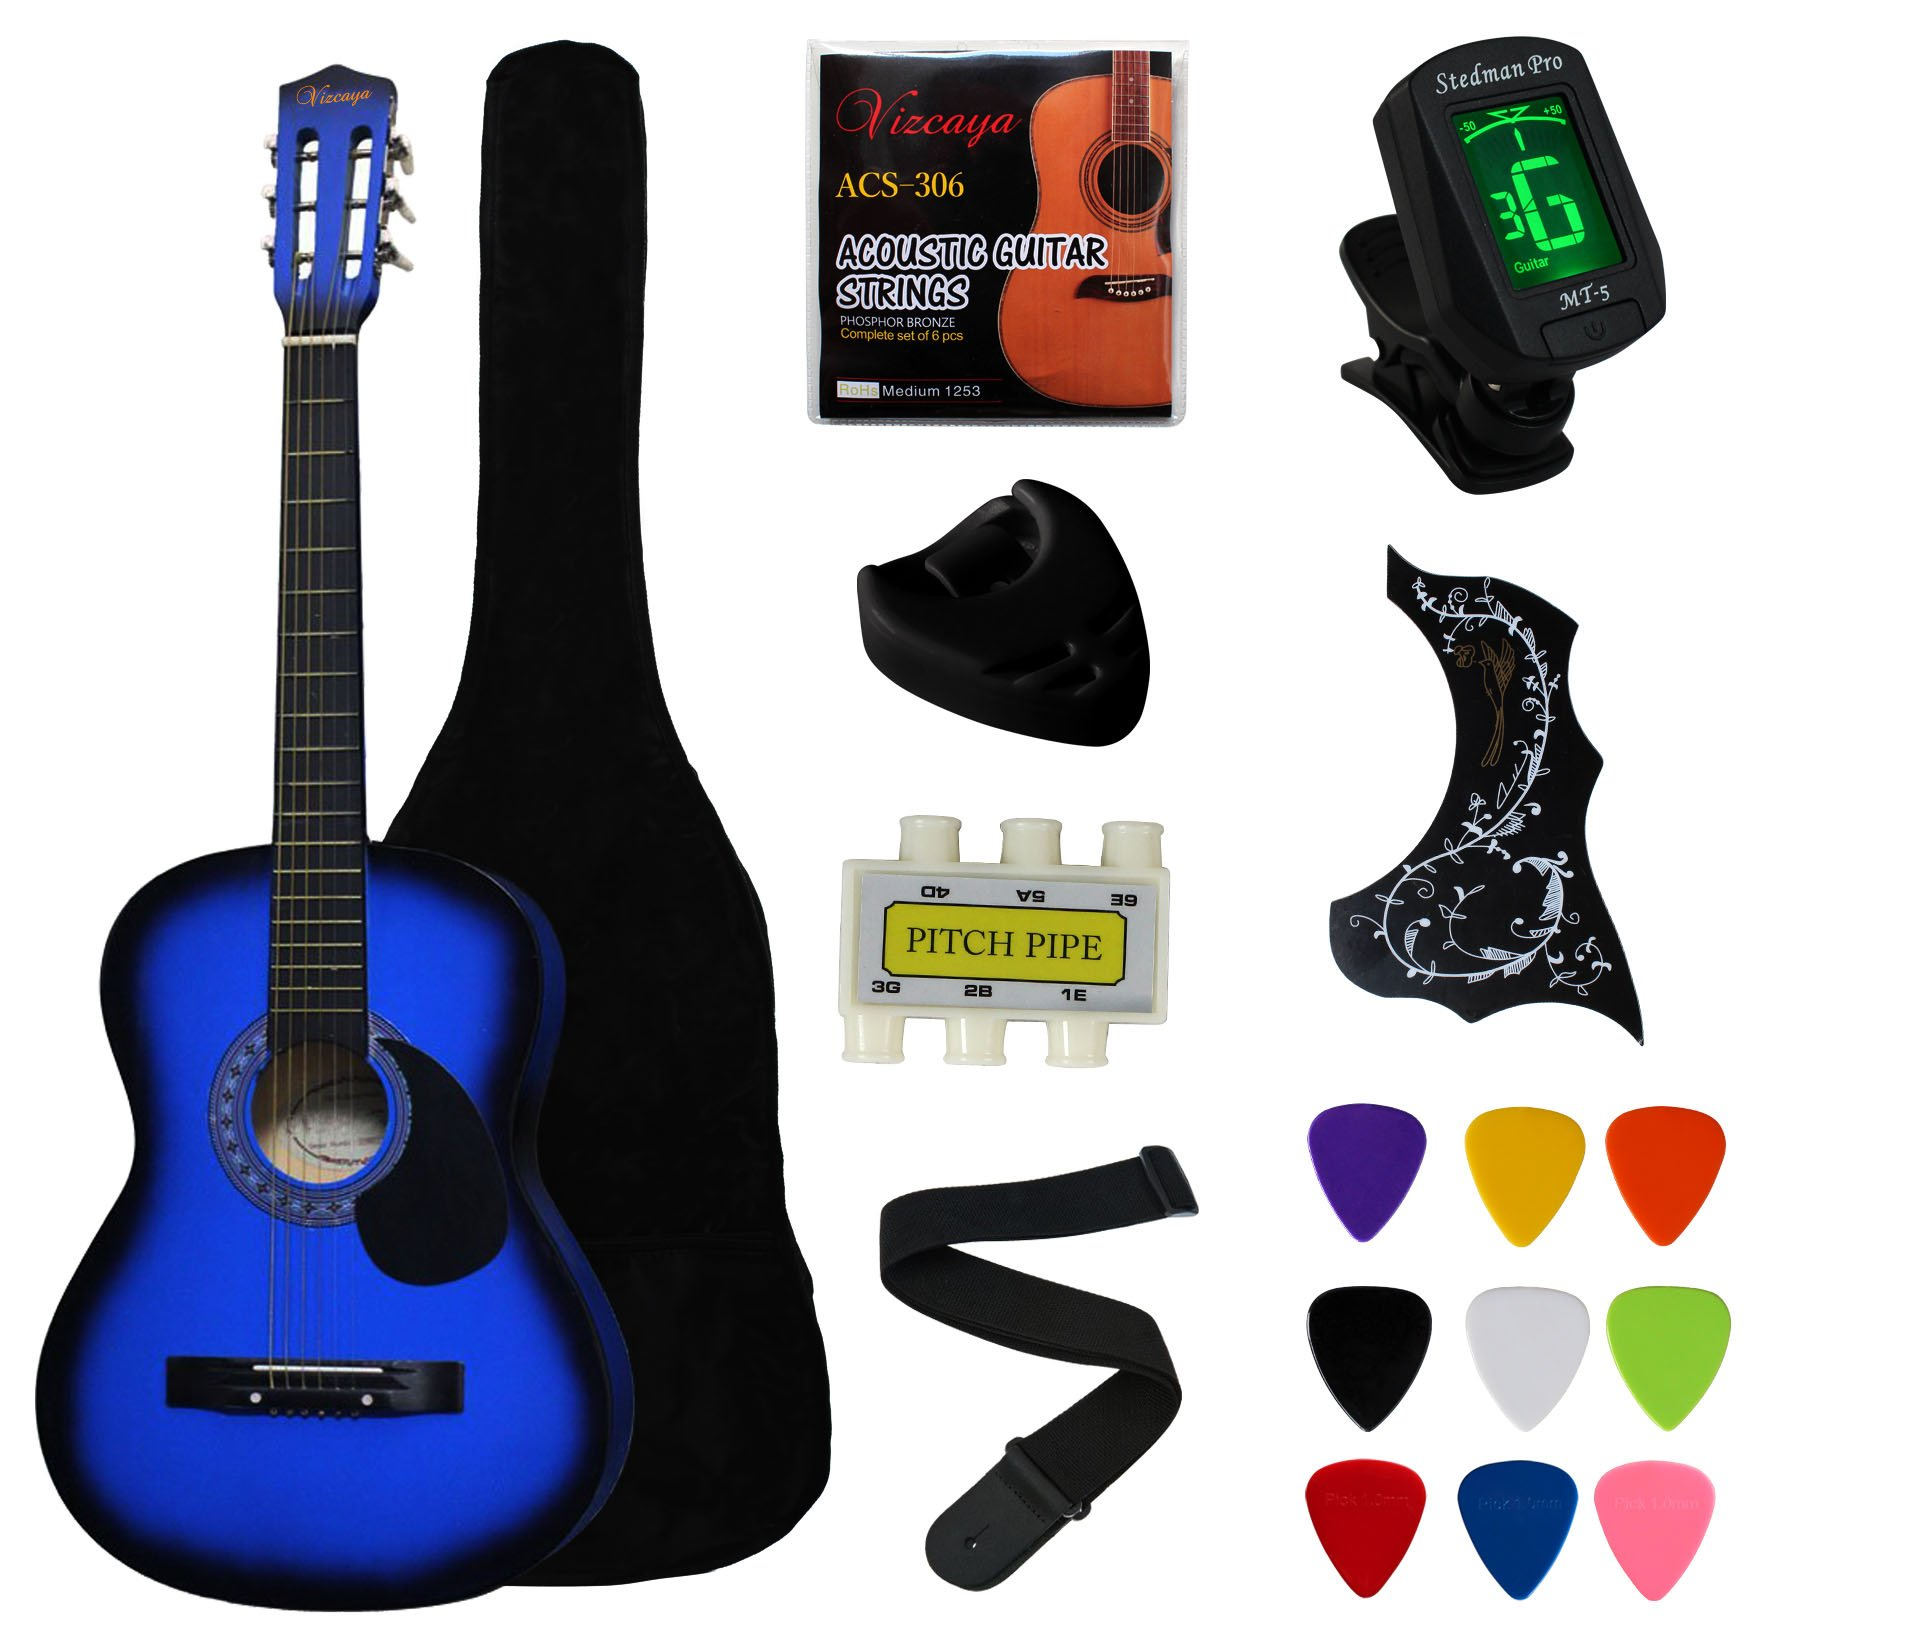 YMC 38'' Blue Beginner Acoustic Guitar Starter Package Student Guitar with Gig Bag,Strap, 3 Thickness 9 Picks,2 Pickguards,Pick Holder, Extra Strings, Electronic Tuner -Blue by YMC